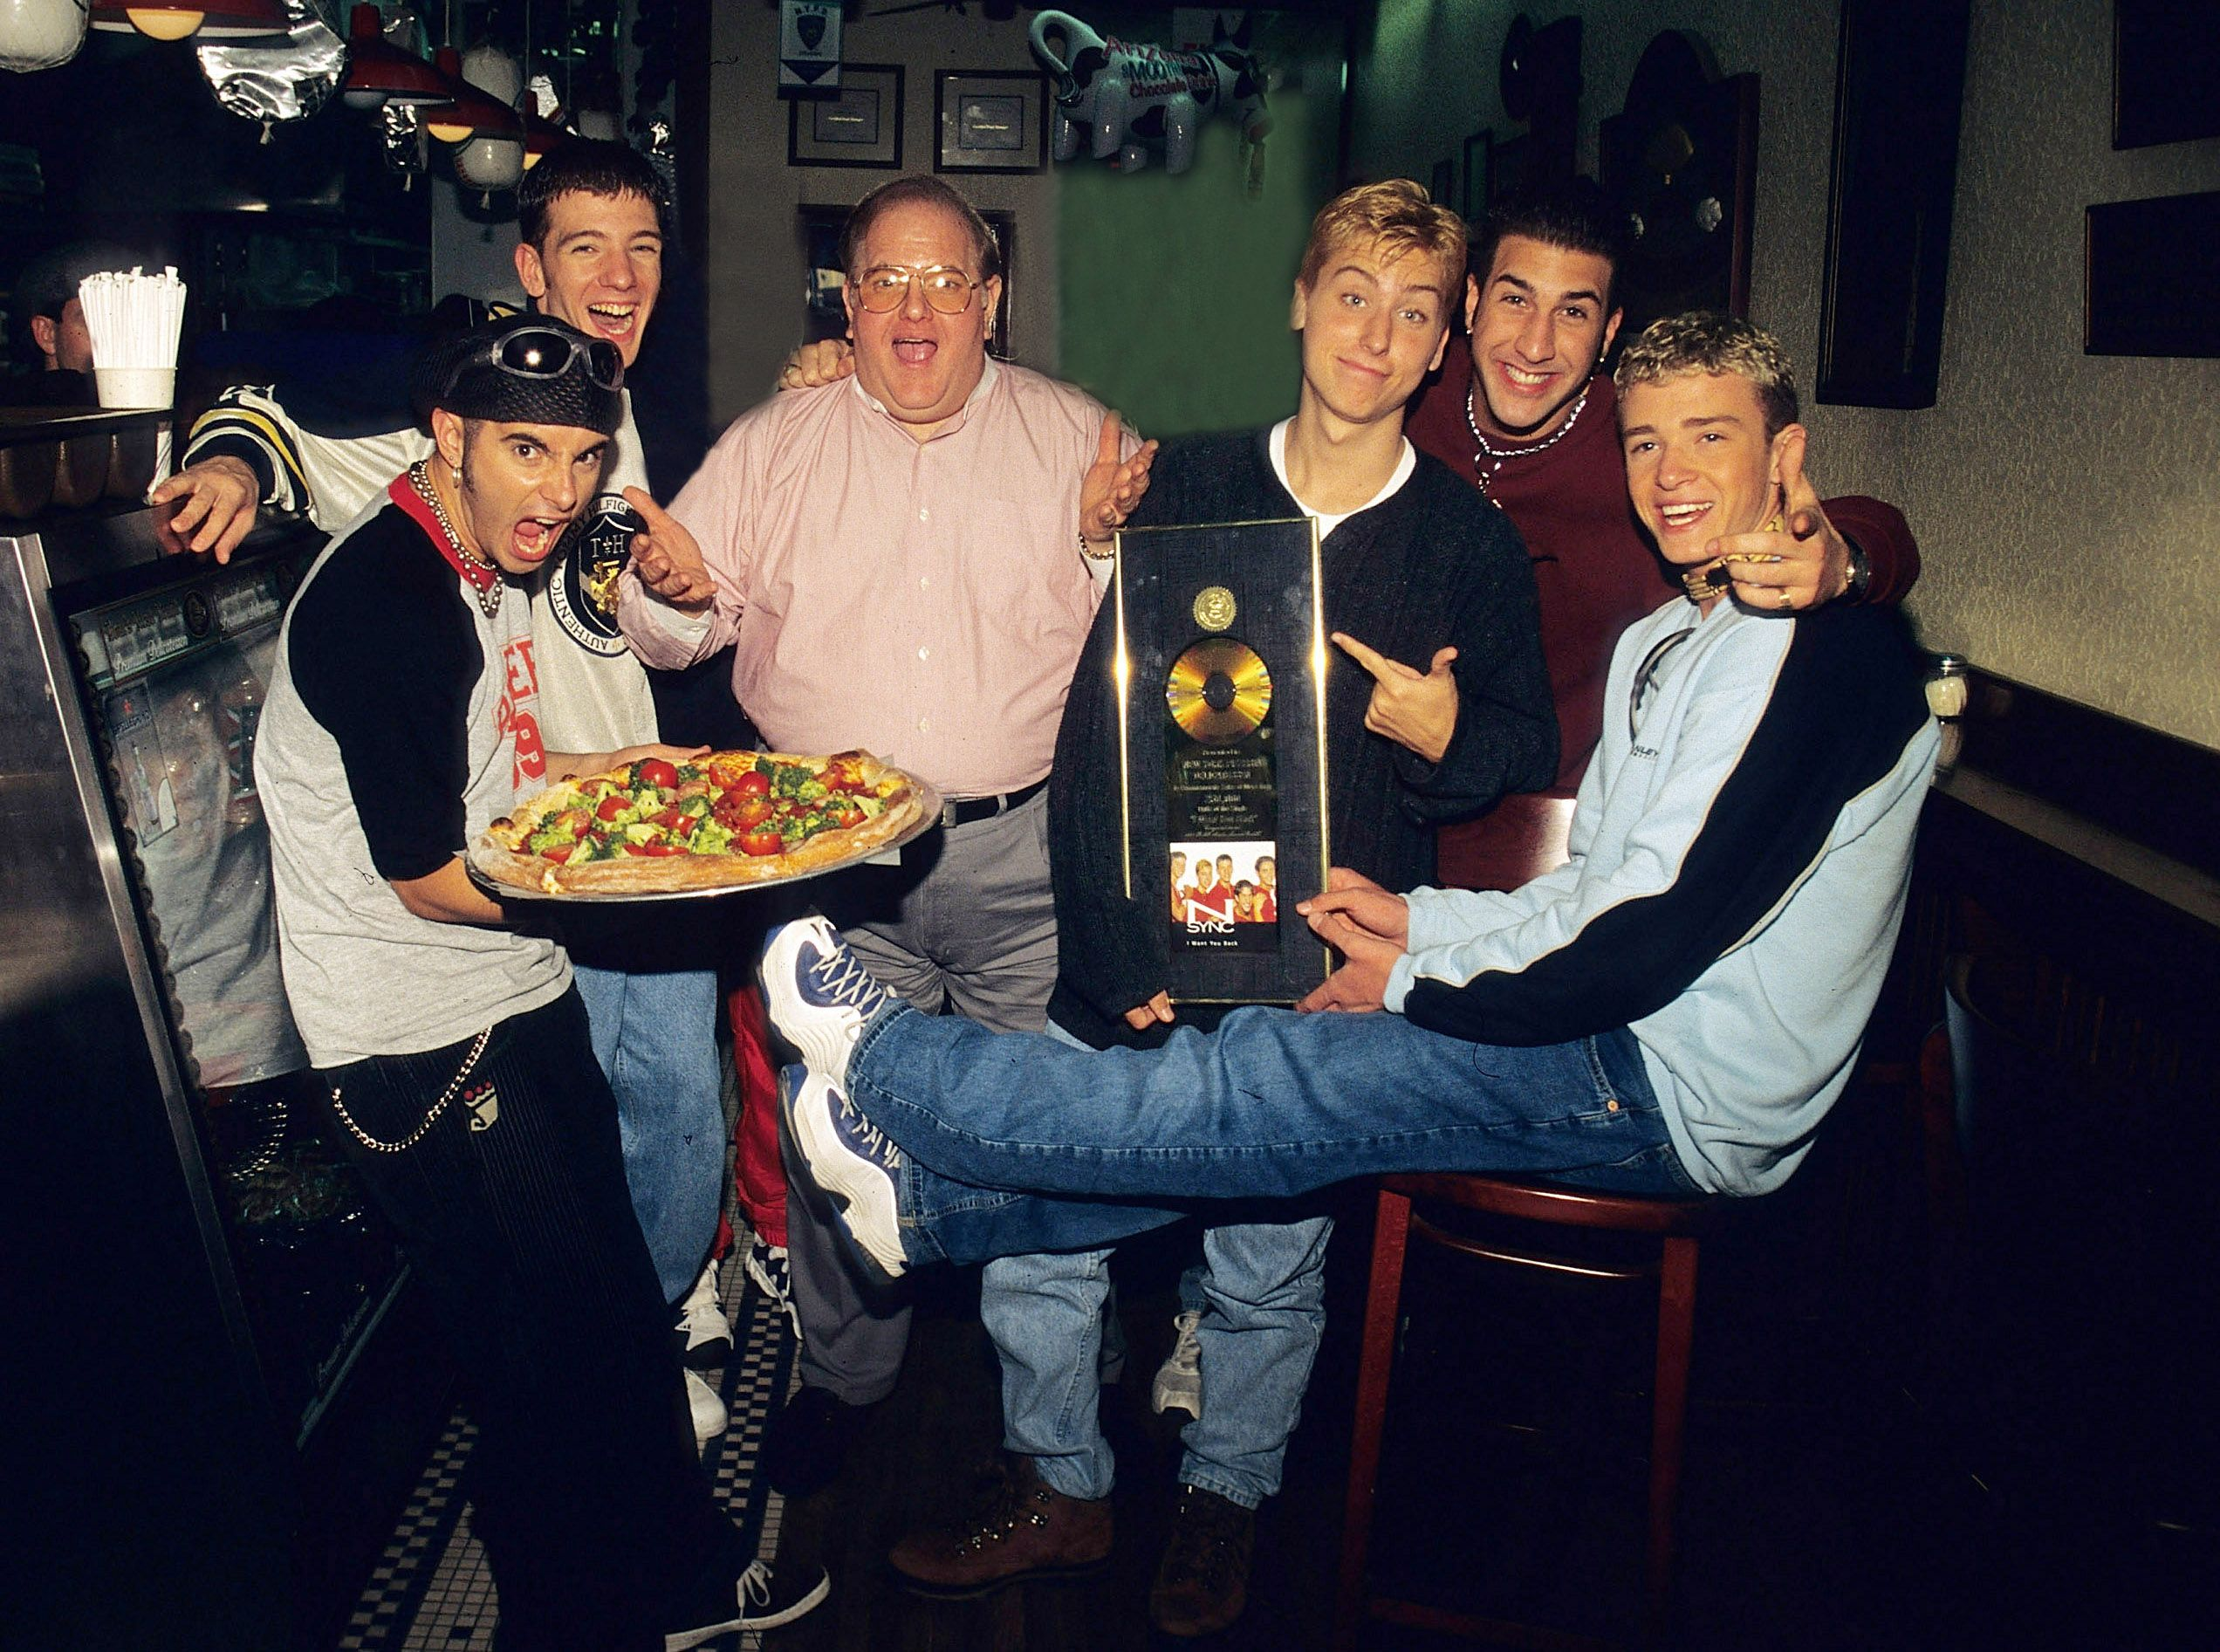 1996: Celebrating the band's success with creator, Lou Pearlman